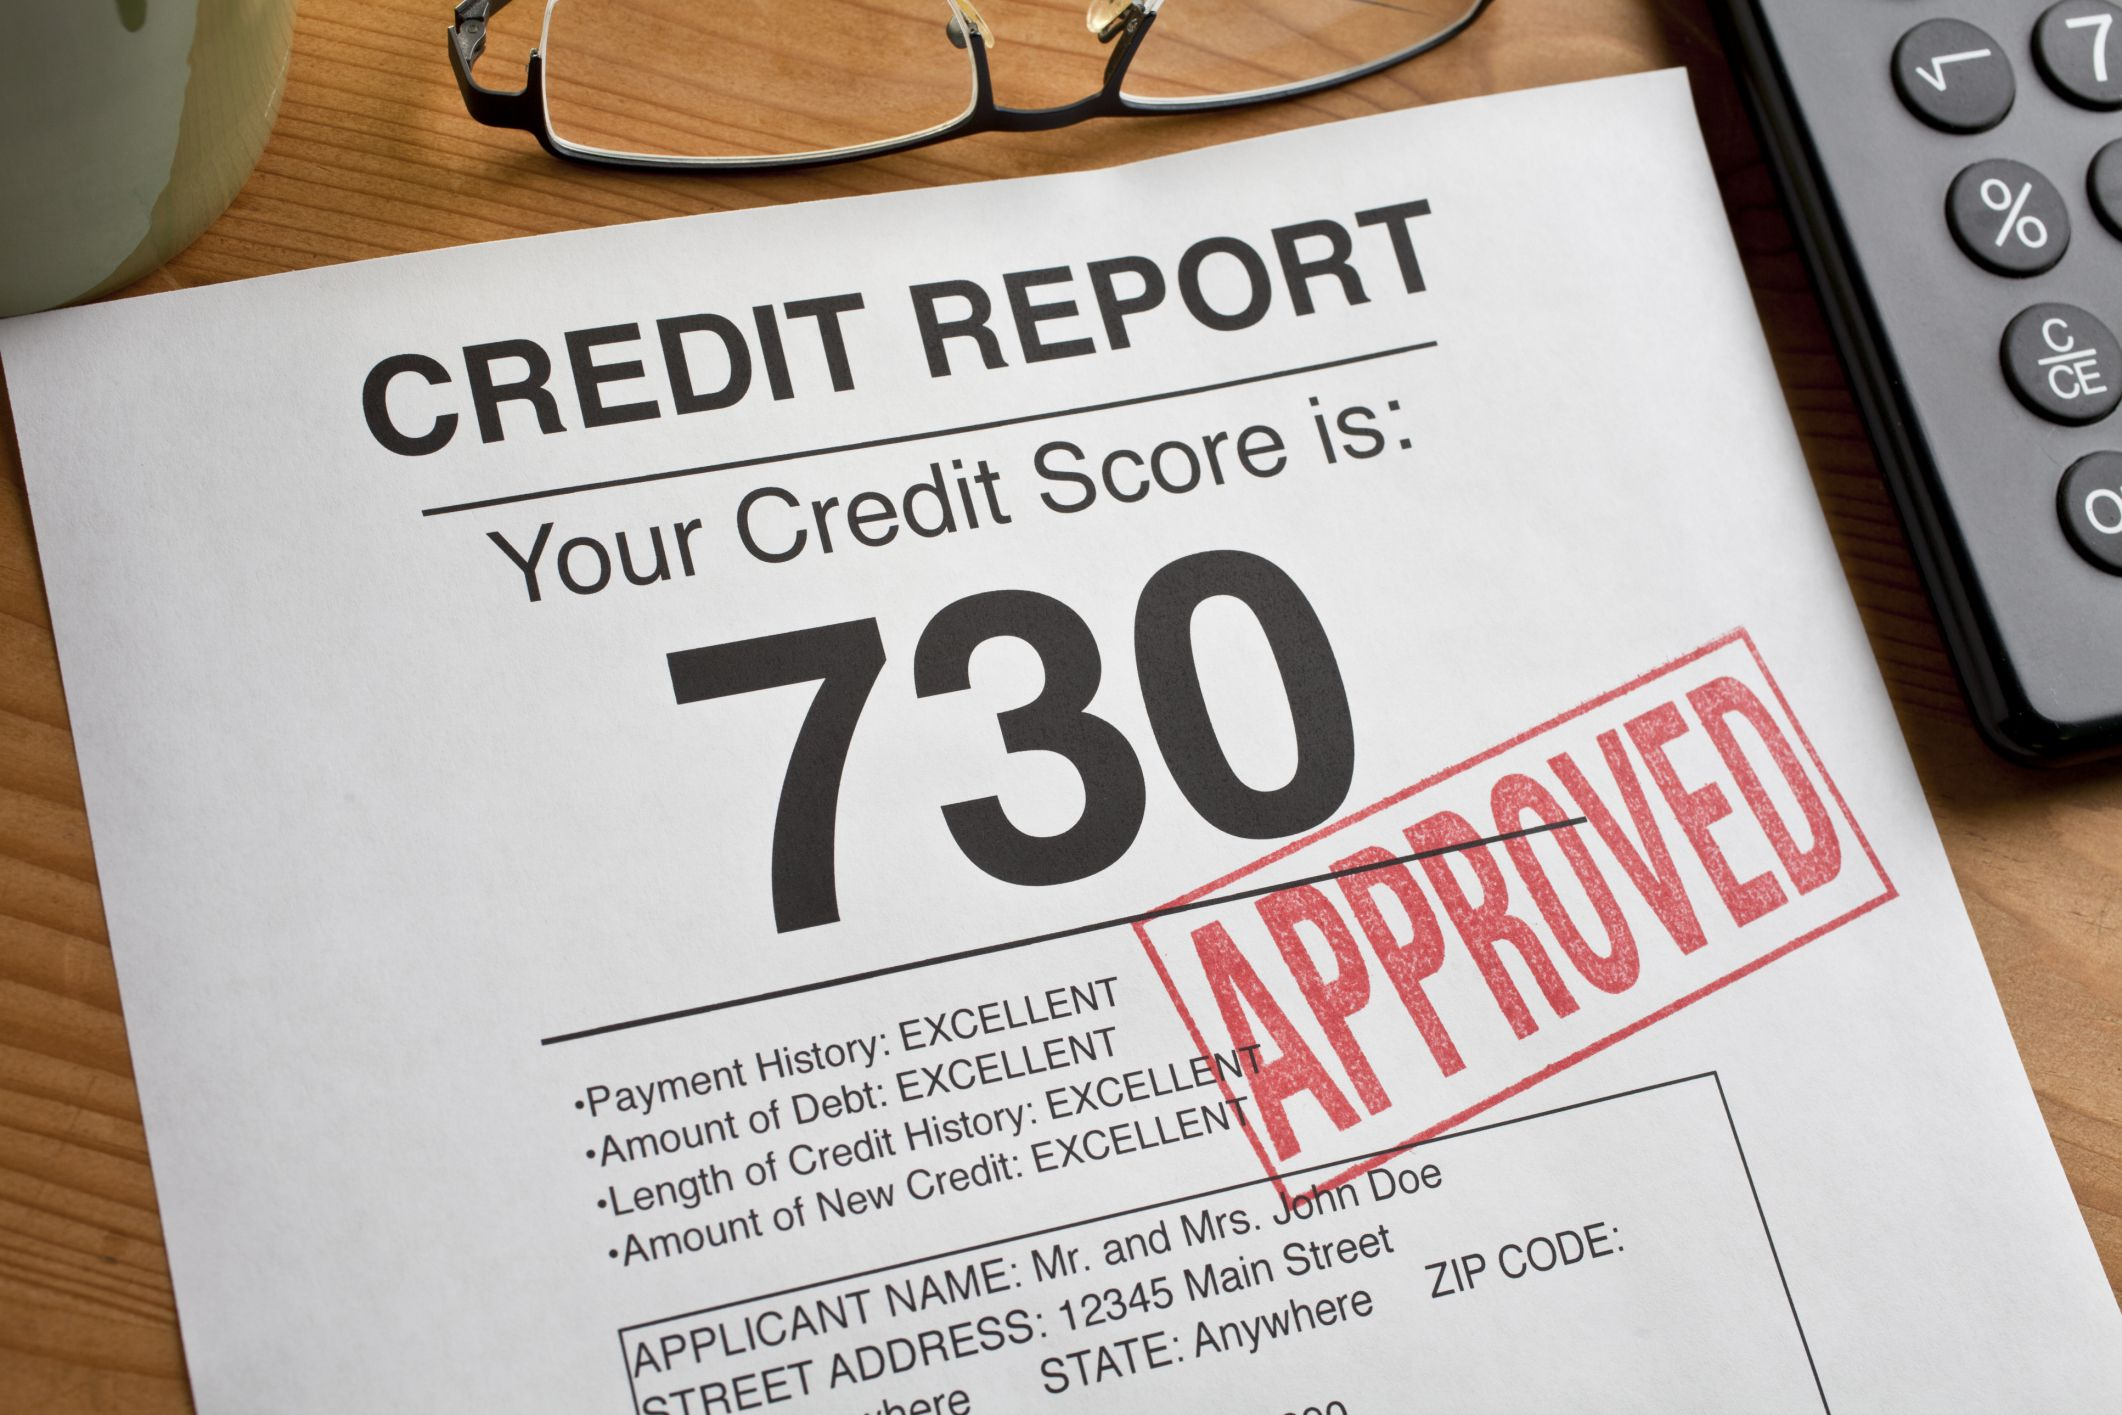 Can a Landlord Check a Tenant's Credit